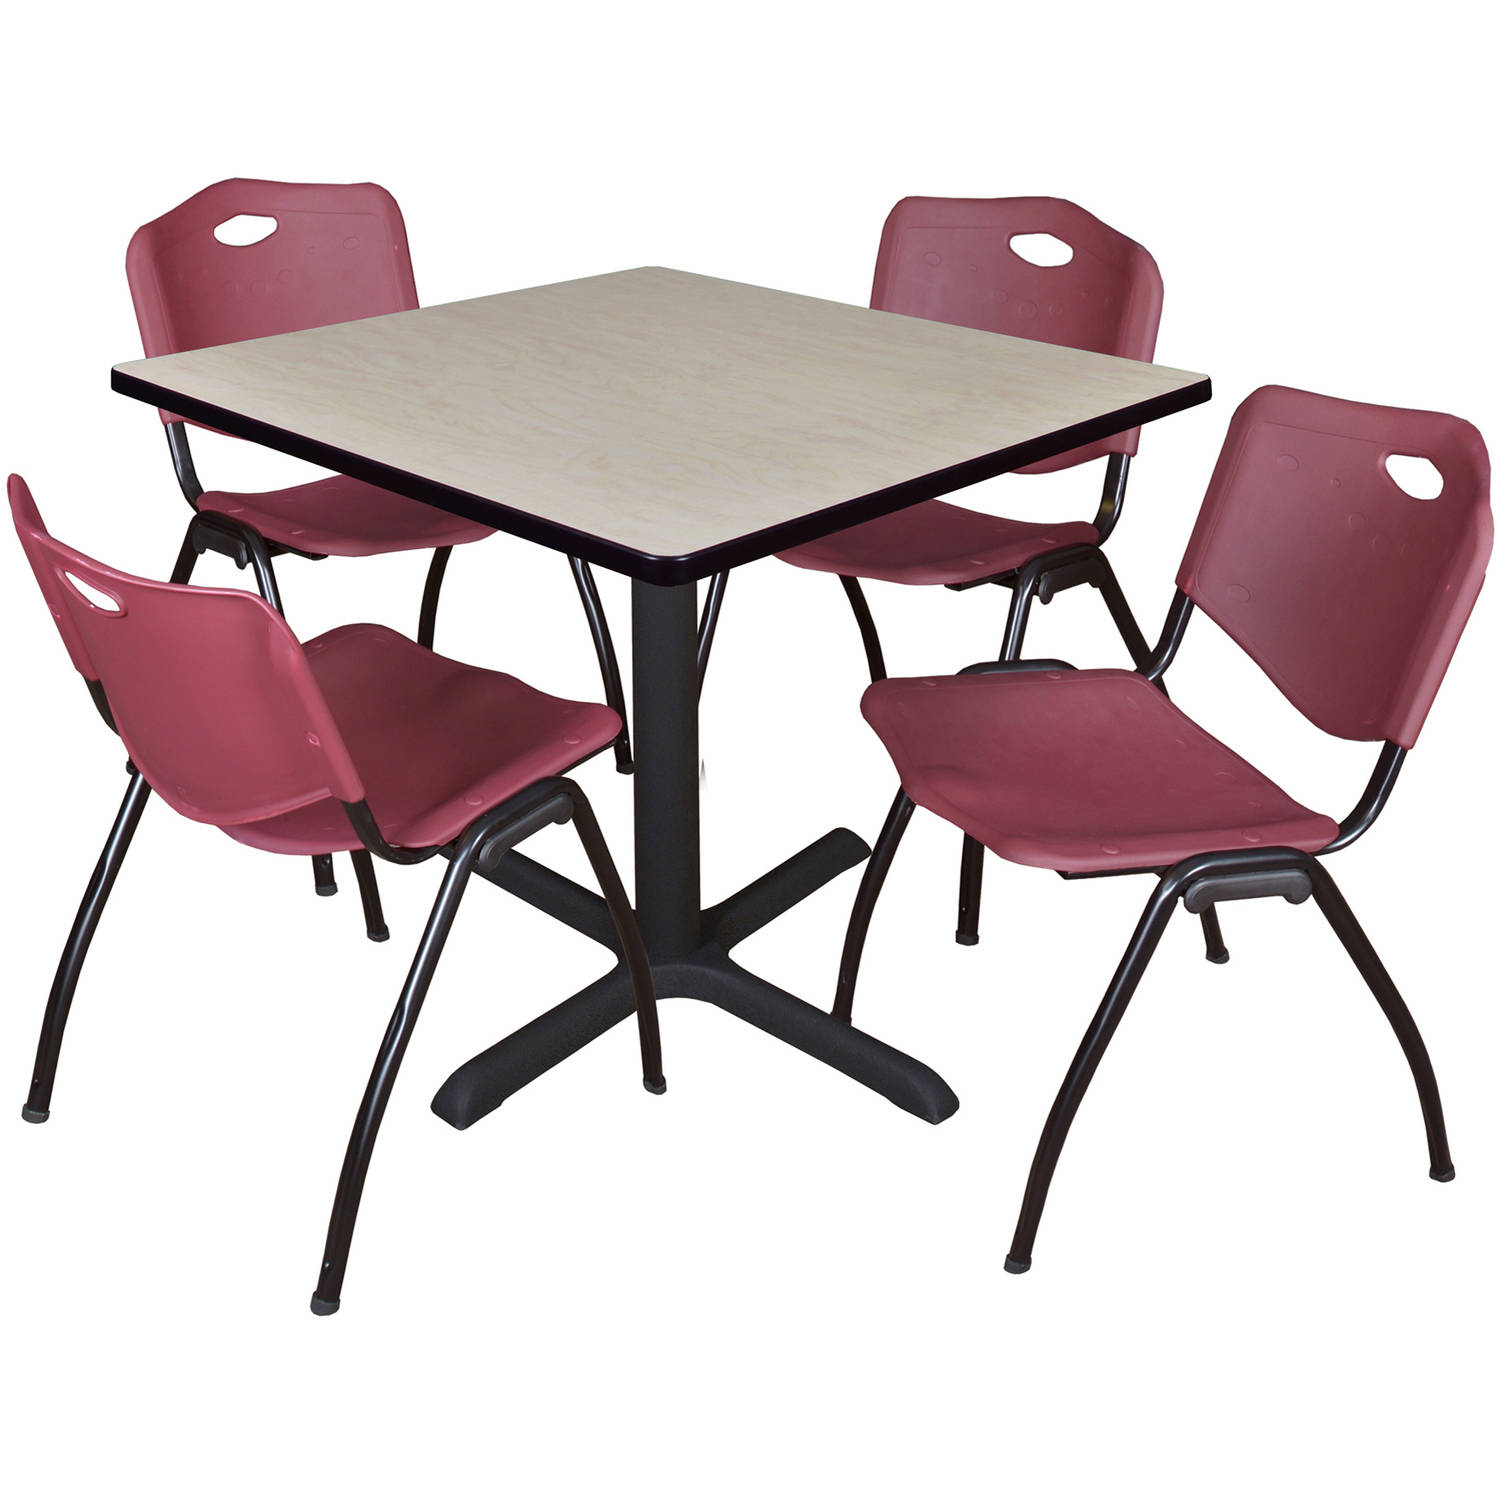 "Cain 36"" Maple Square Breakroom Table and 4 'M' Stack Chairs, Multiple Colors"